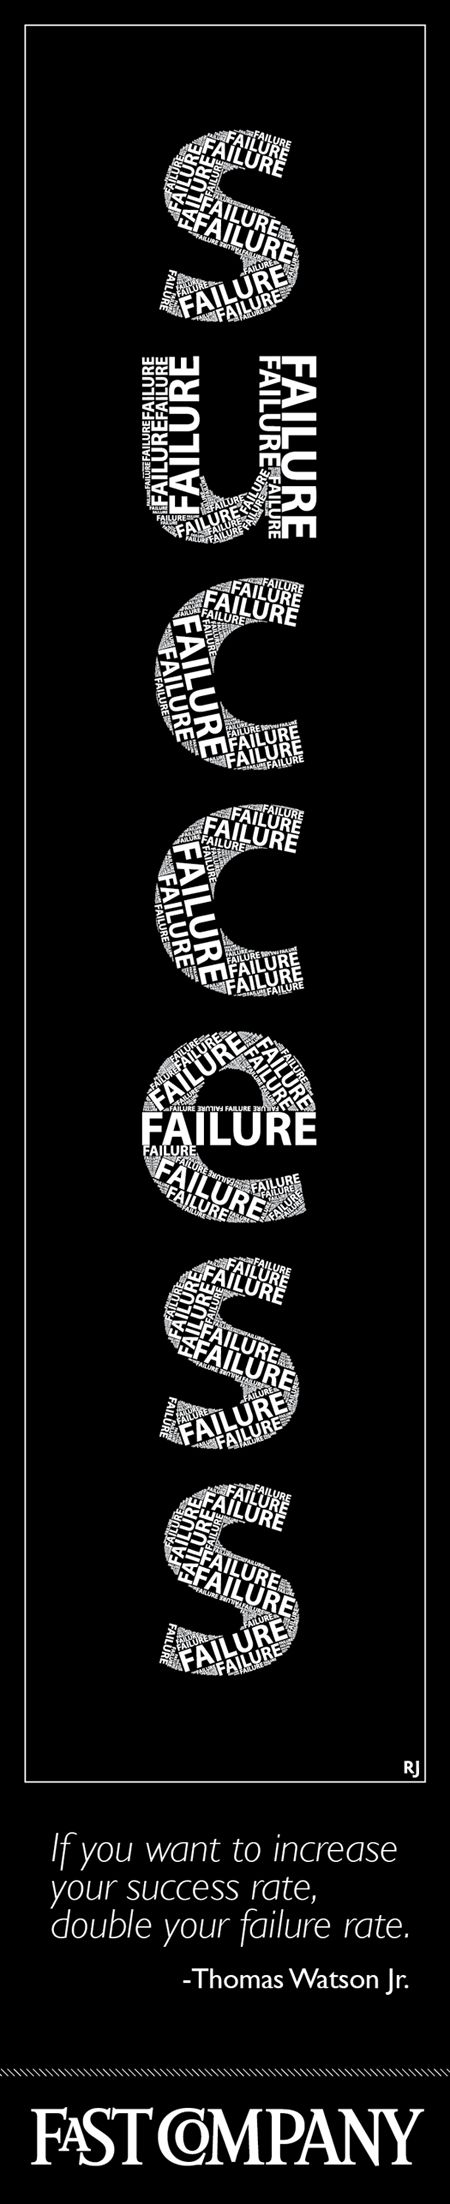 """""""If you want to increase your success rate, double your failure rate."""" -Thomas Watson Jr."""